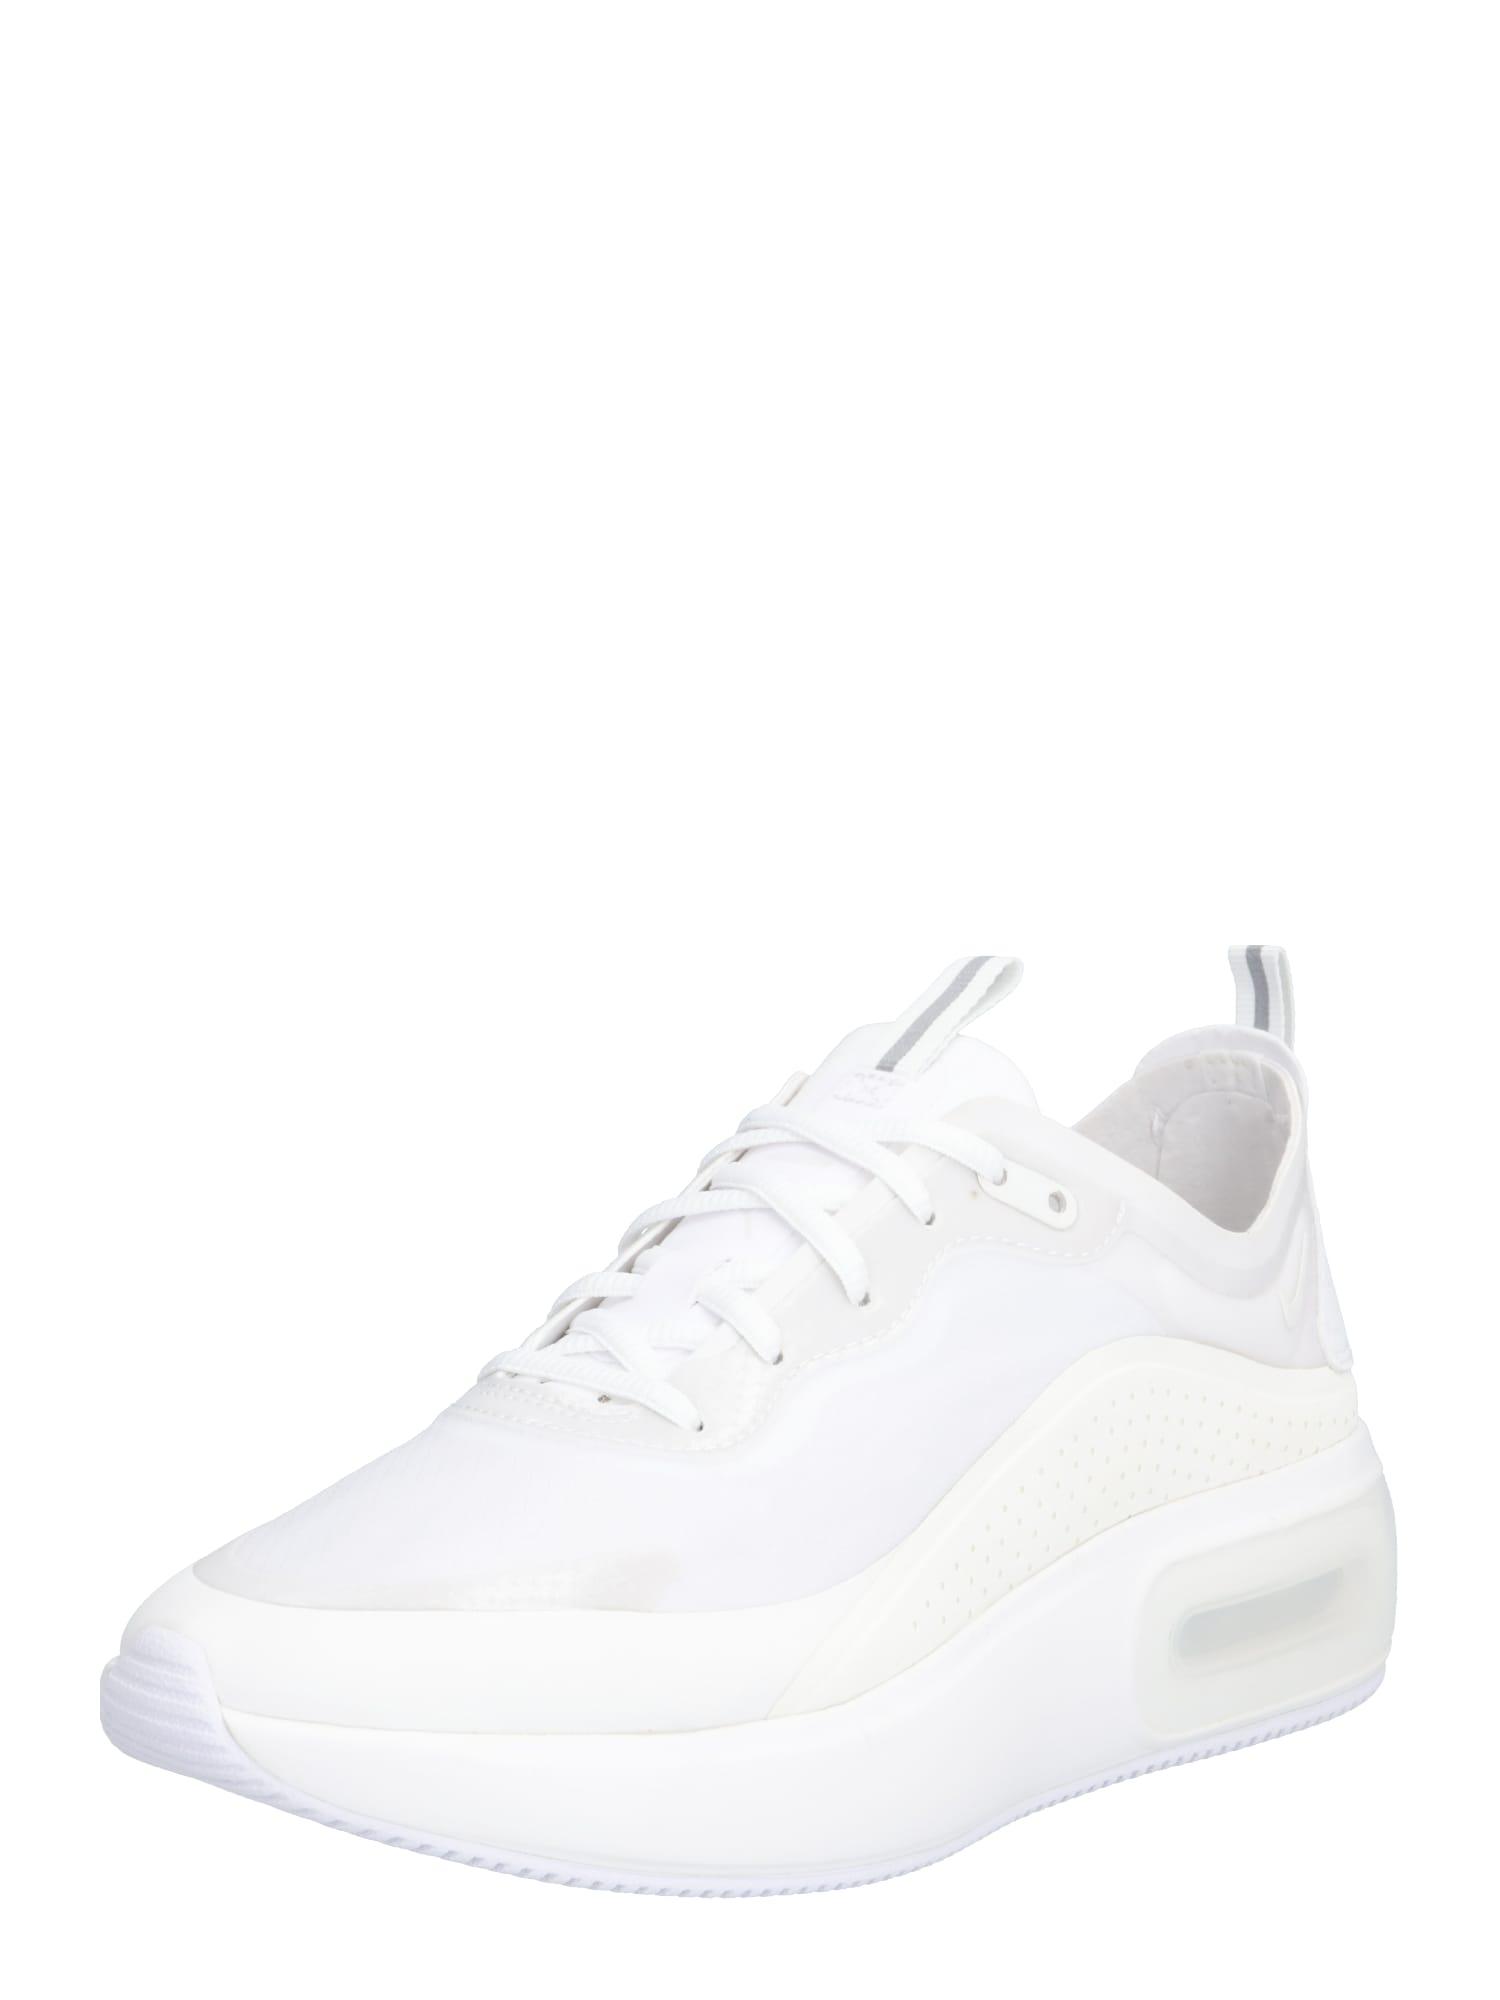 Nike Sportswear, Dames Sneakers laag 'Nike Air Max Dia SE', zilver / wit